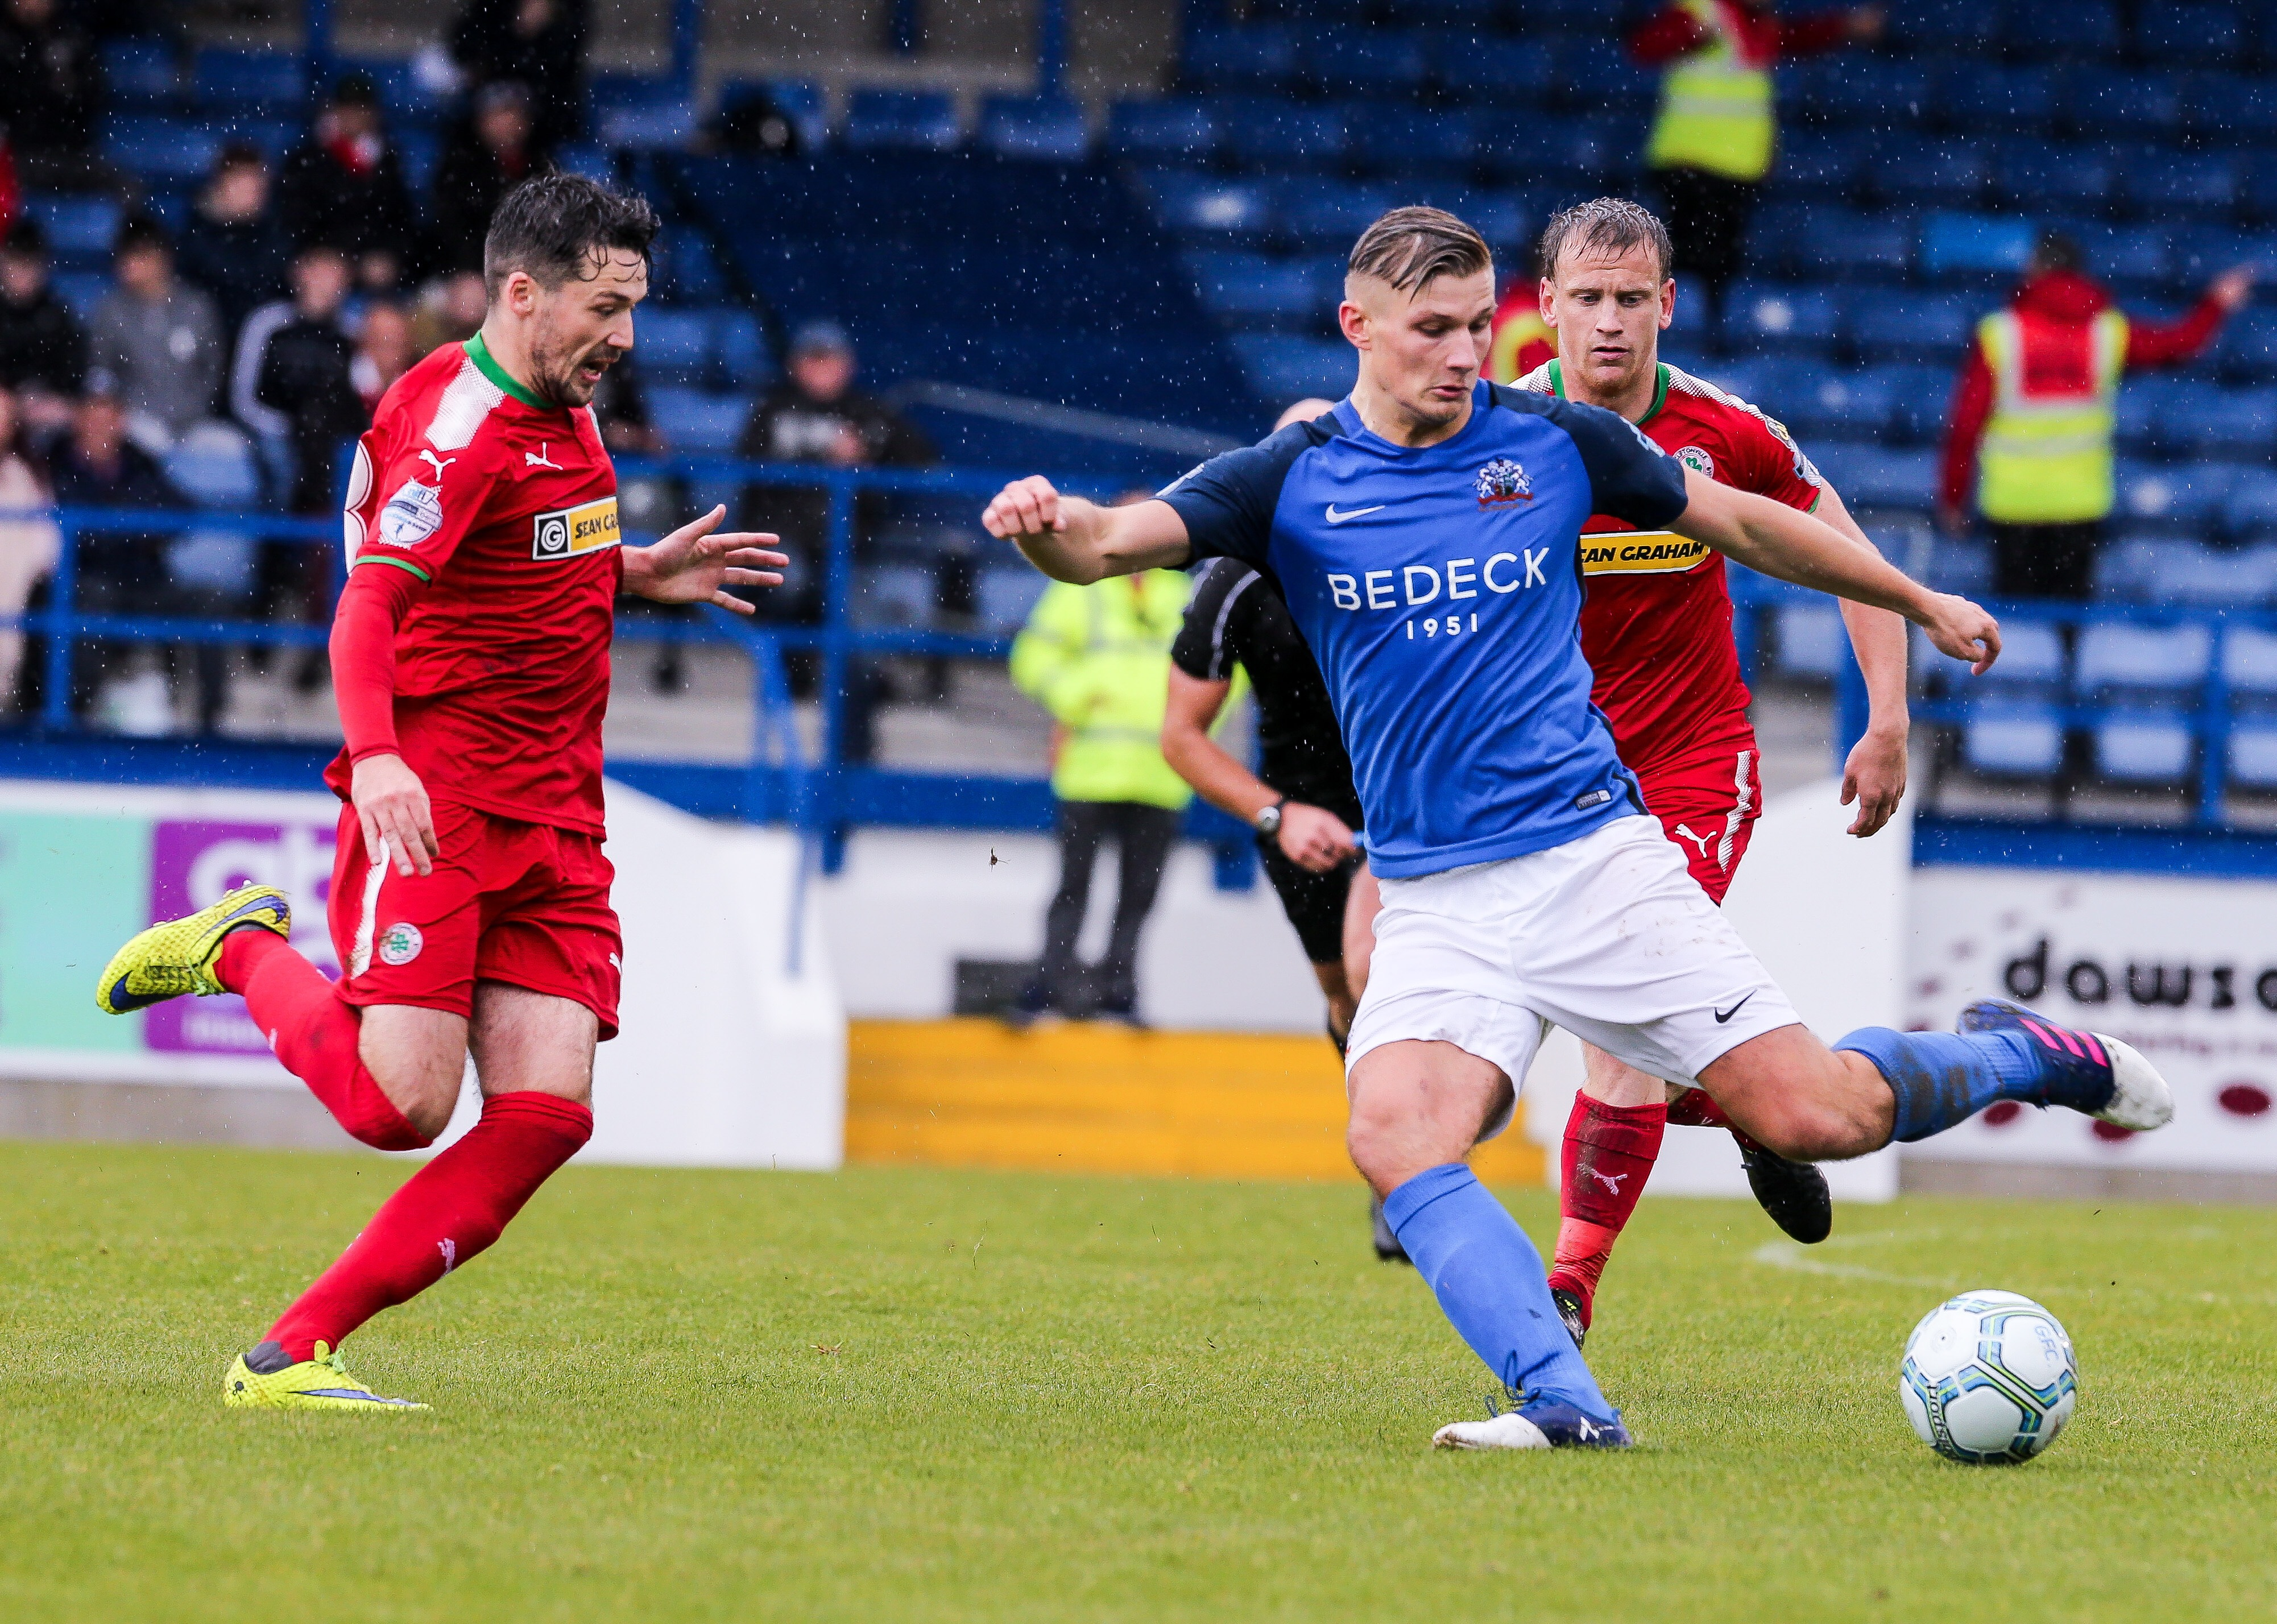 Preview: Cliftonville v Glenavon